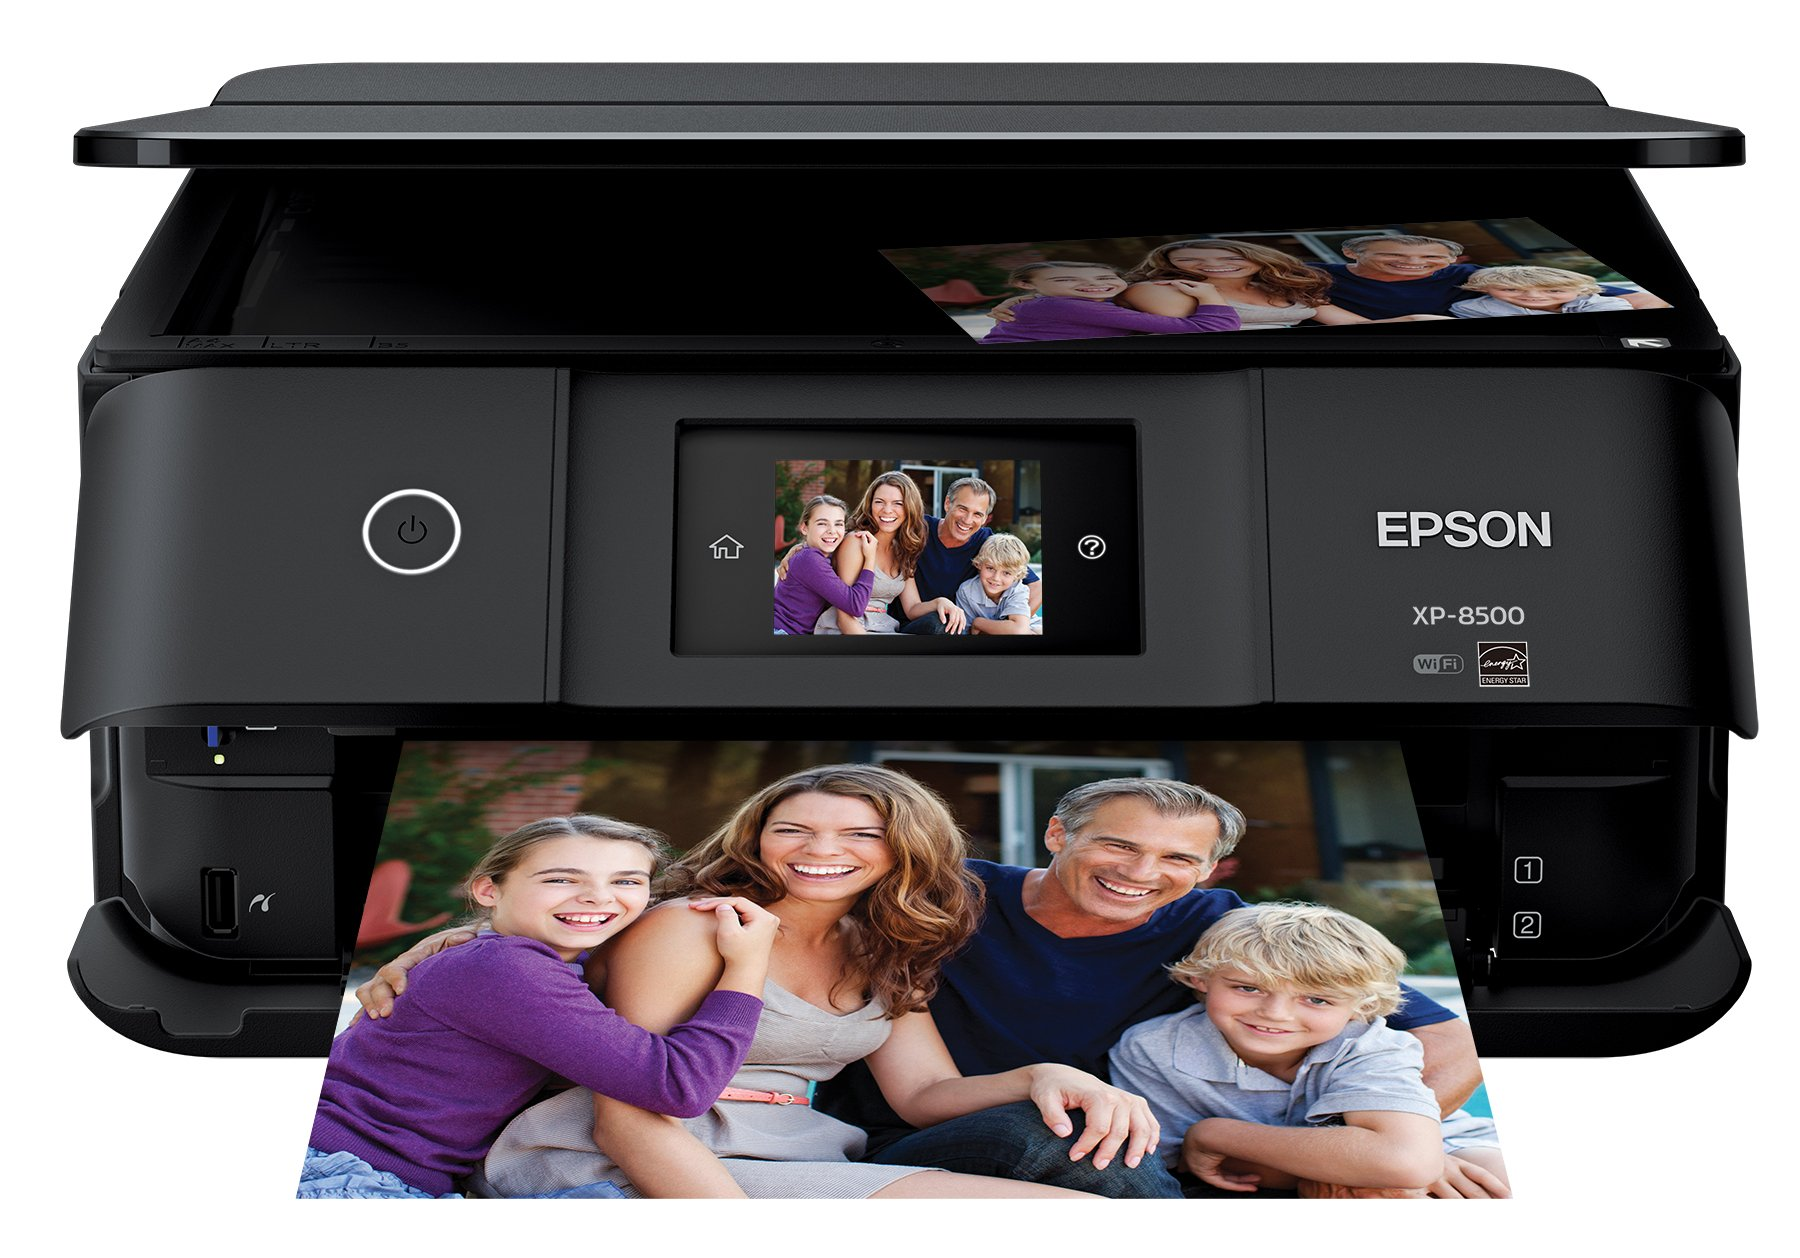 Epson Expression Photo XP-8500 Wireless Color Photo Printer with Scanner and Copier by Epson